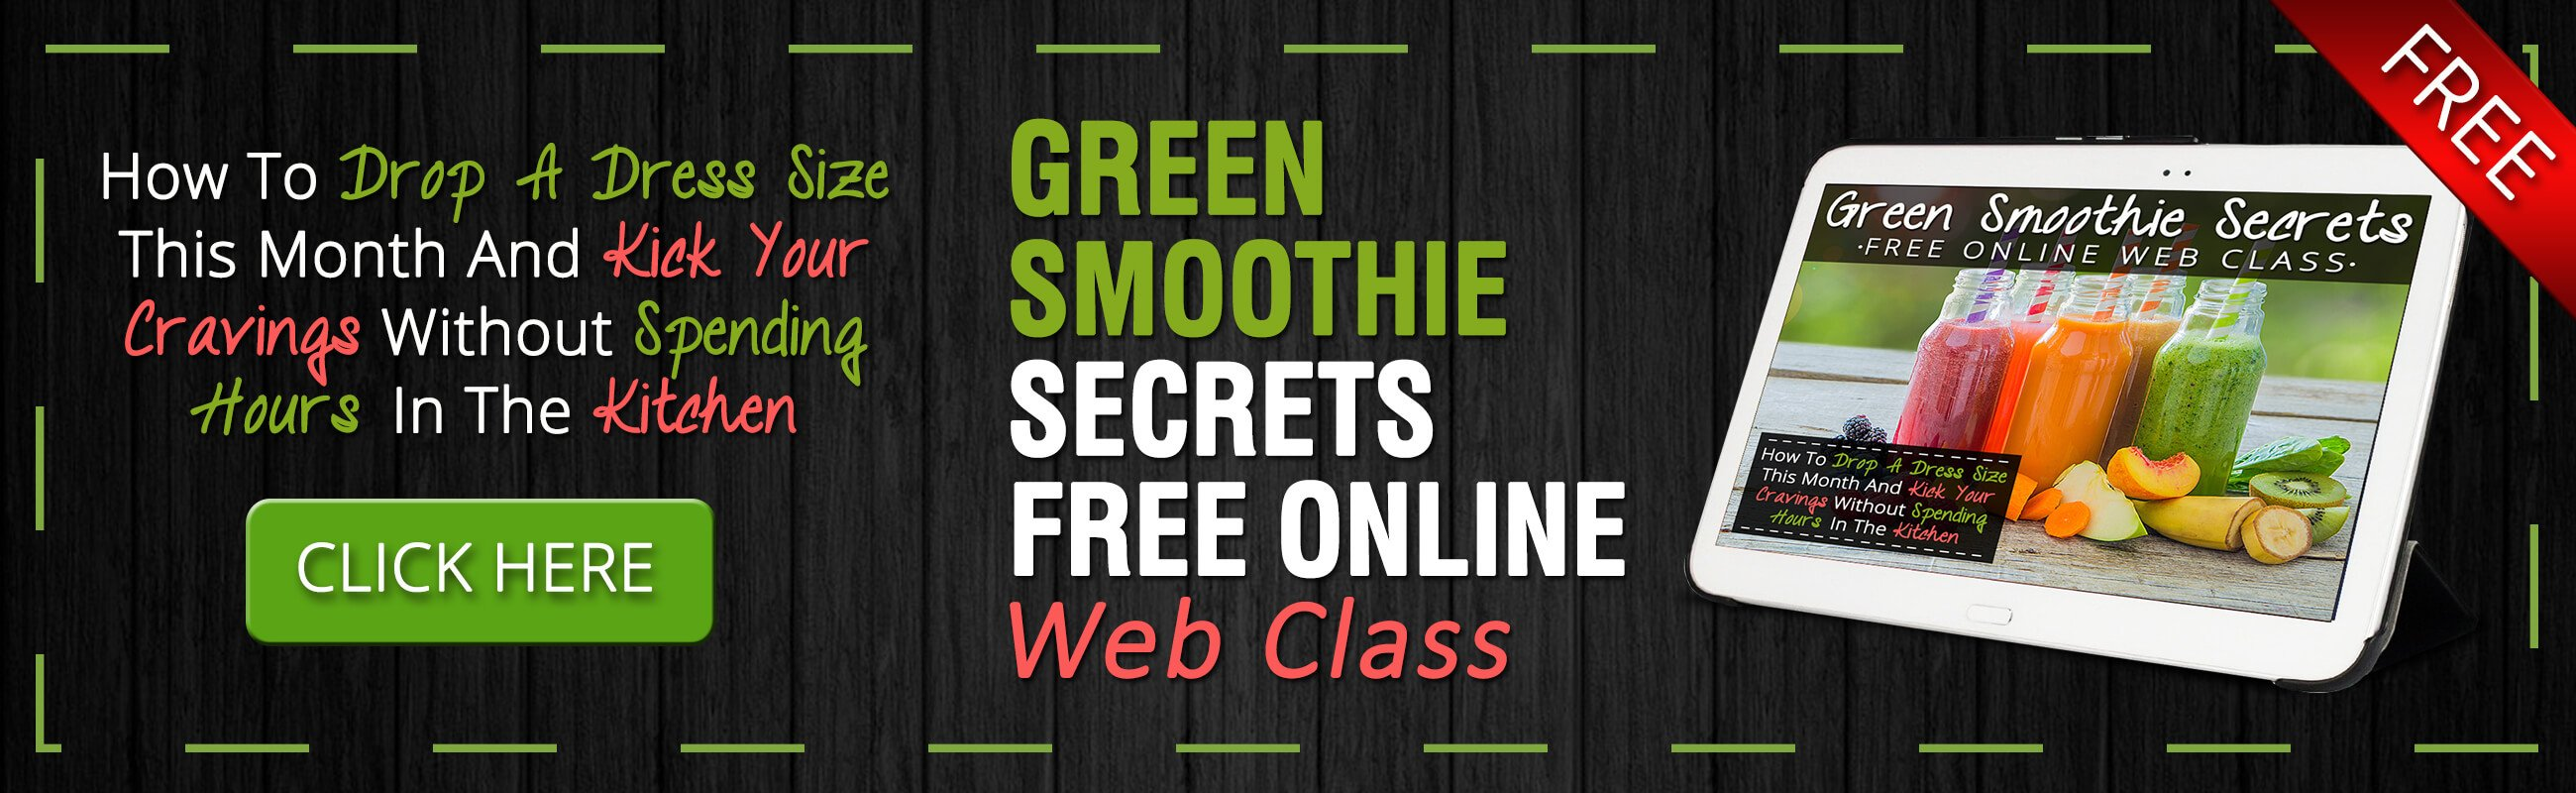 Join The Green Smoothie Secrets Webinar